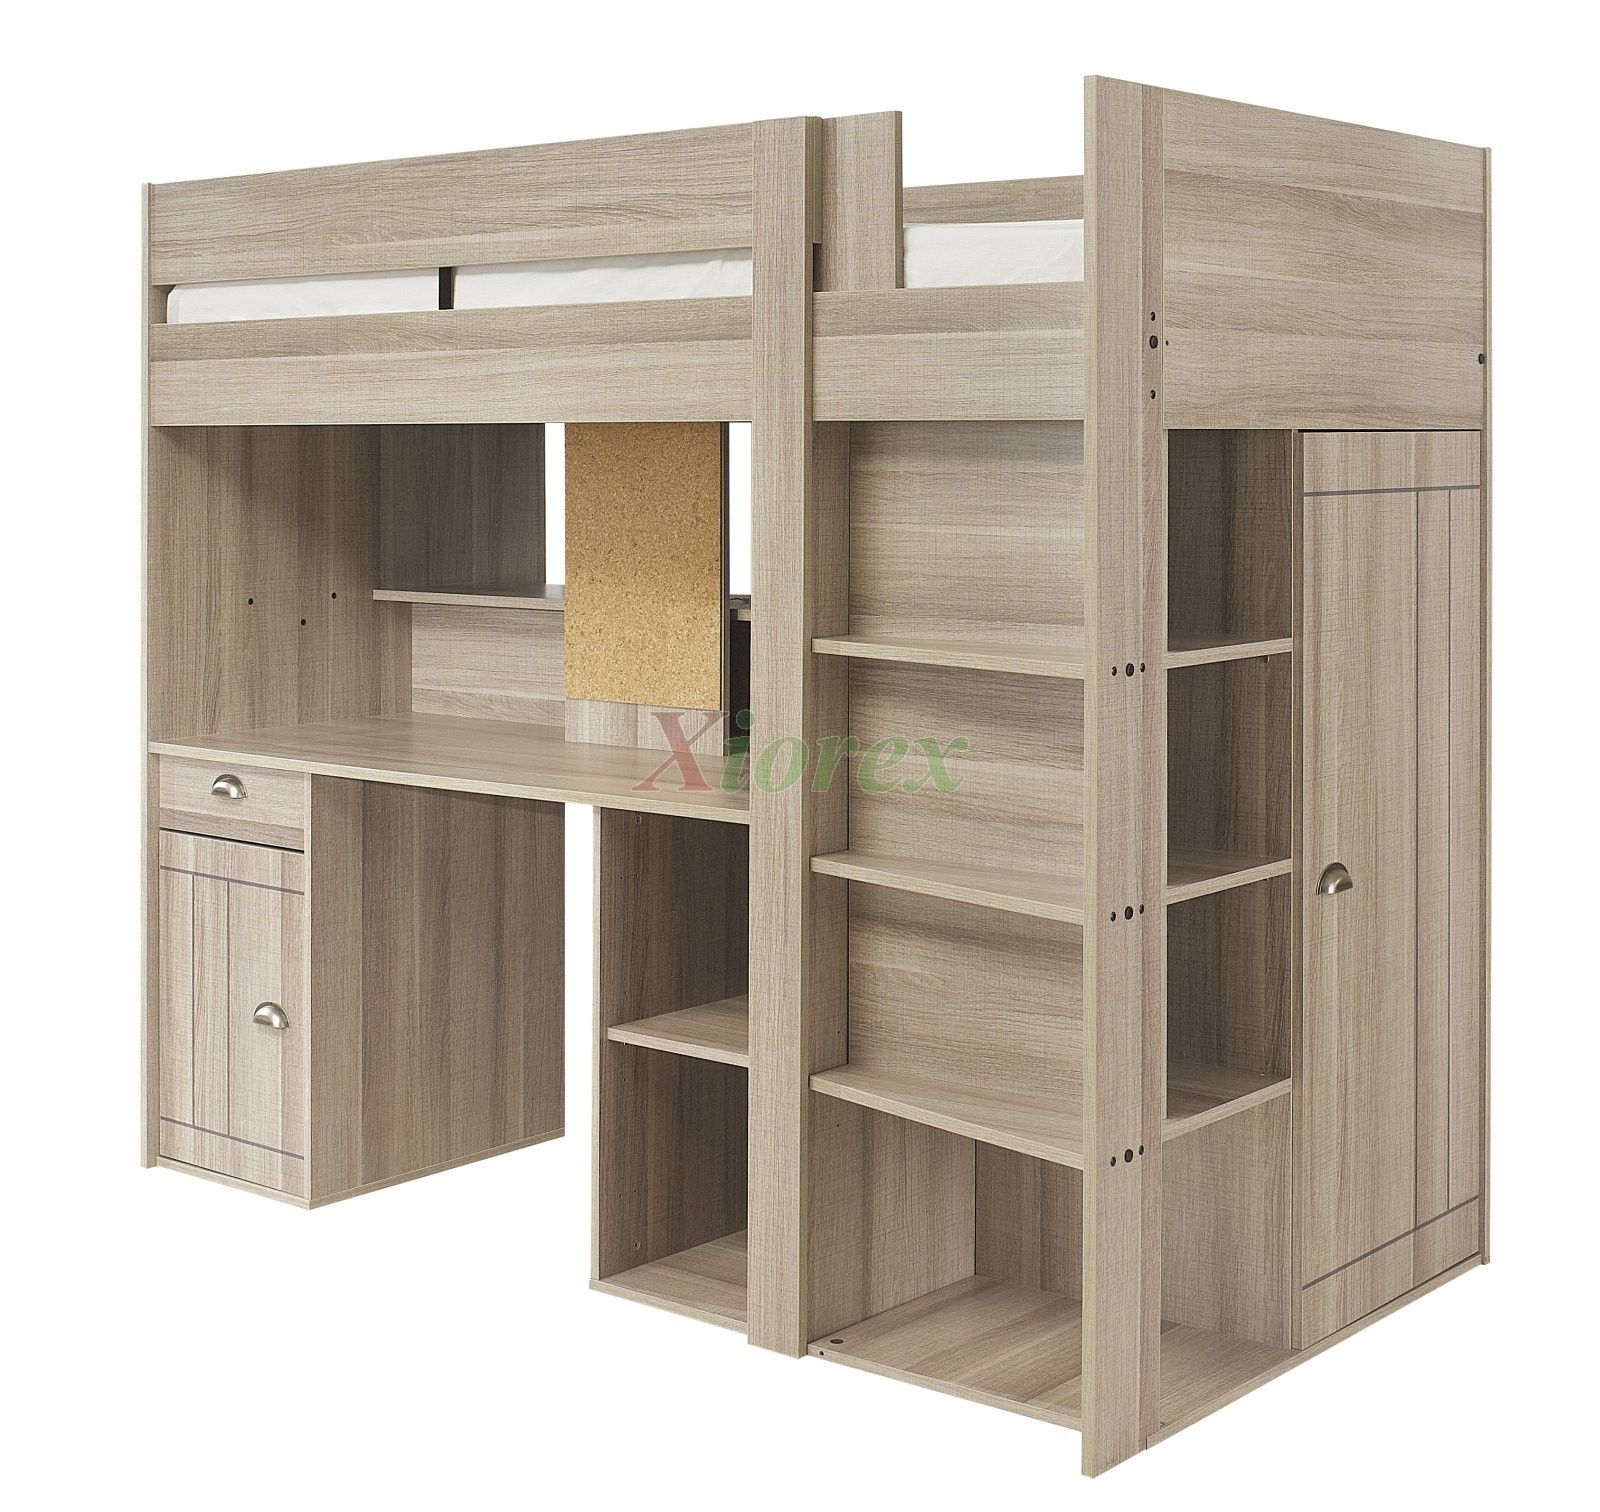 Bunk beds with desk and closet - Gami Largo Teen Loft Beds Canada With Desk And Closet Are New Designed Awesome Loft Beds